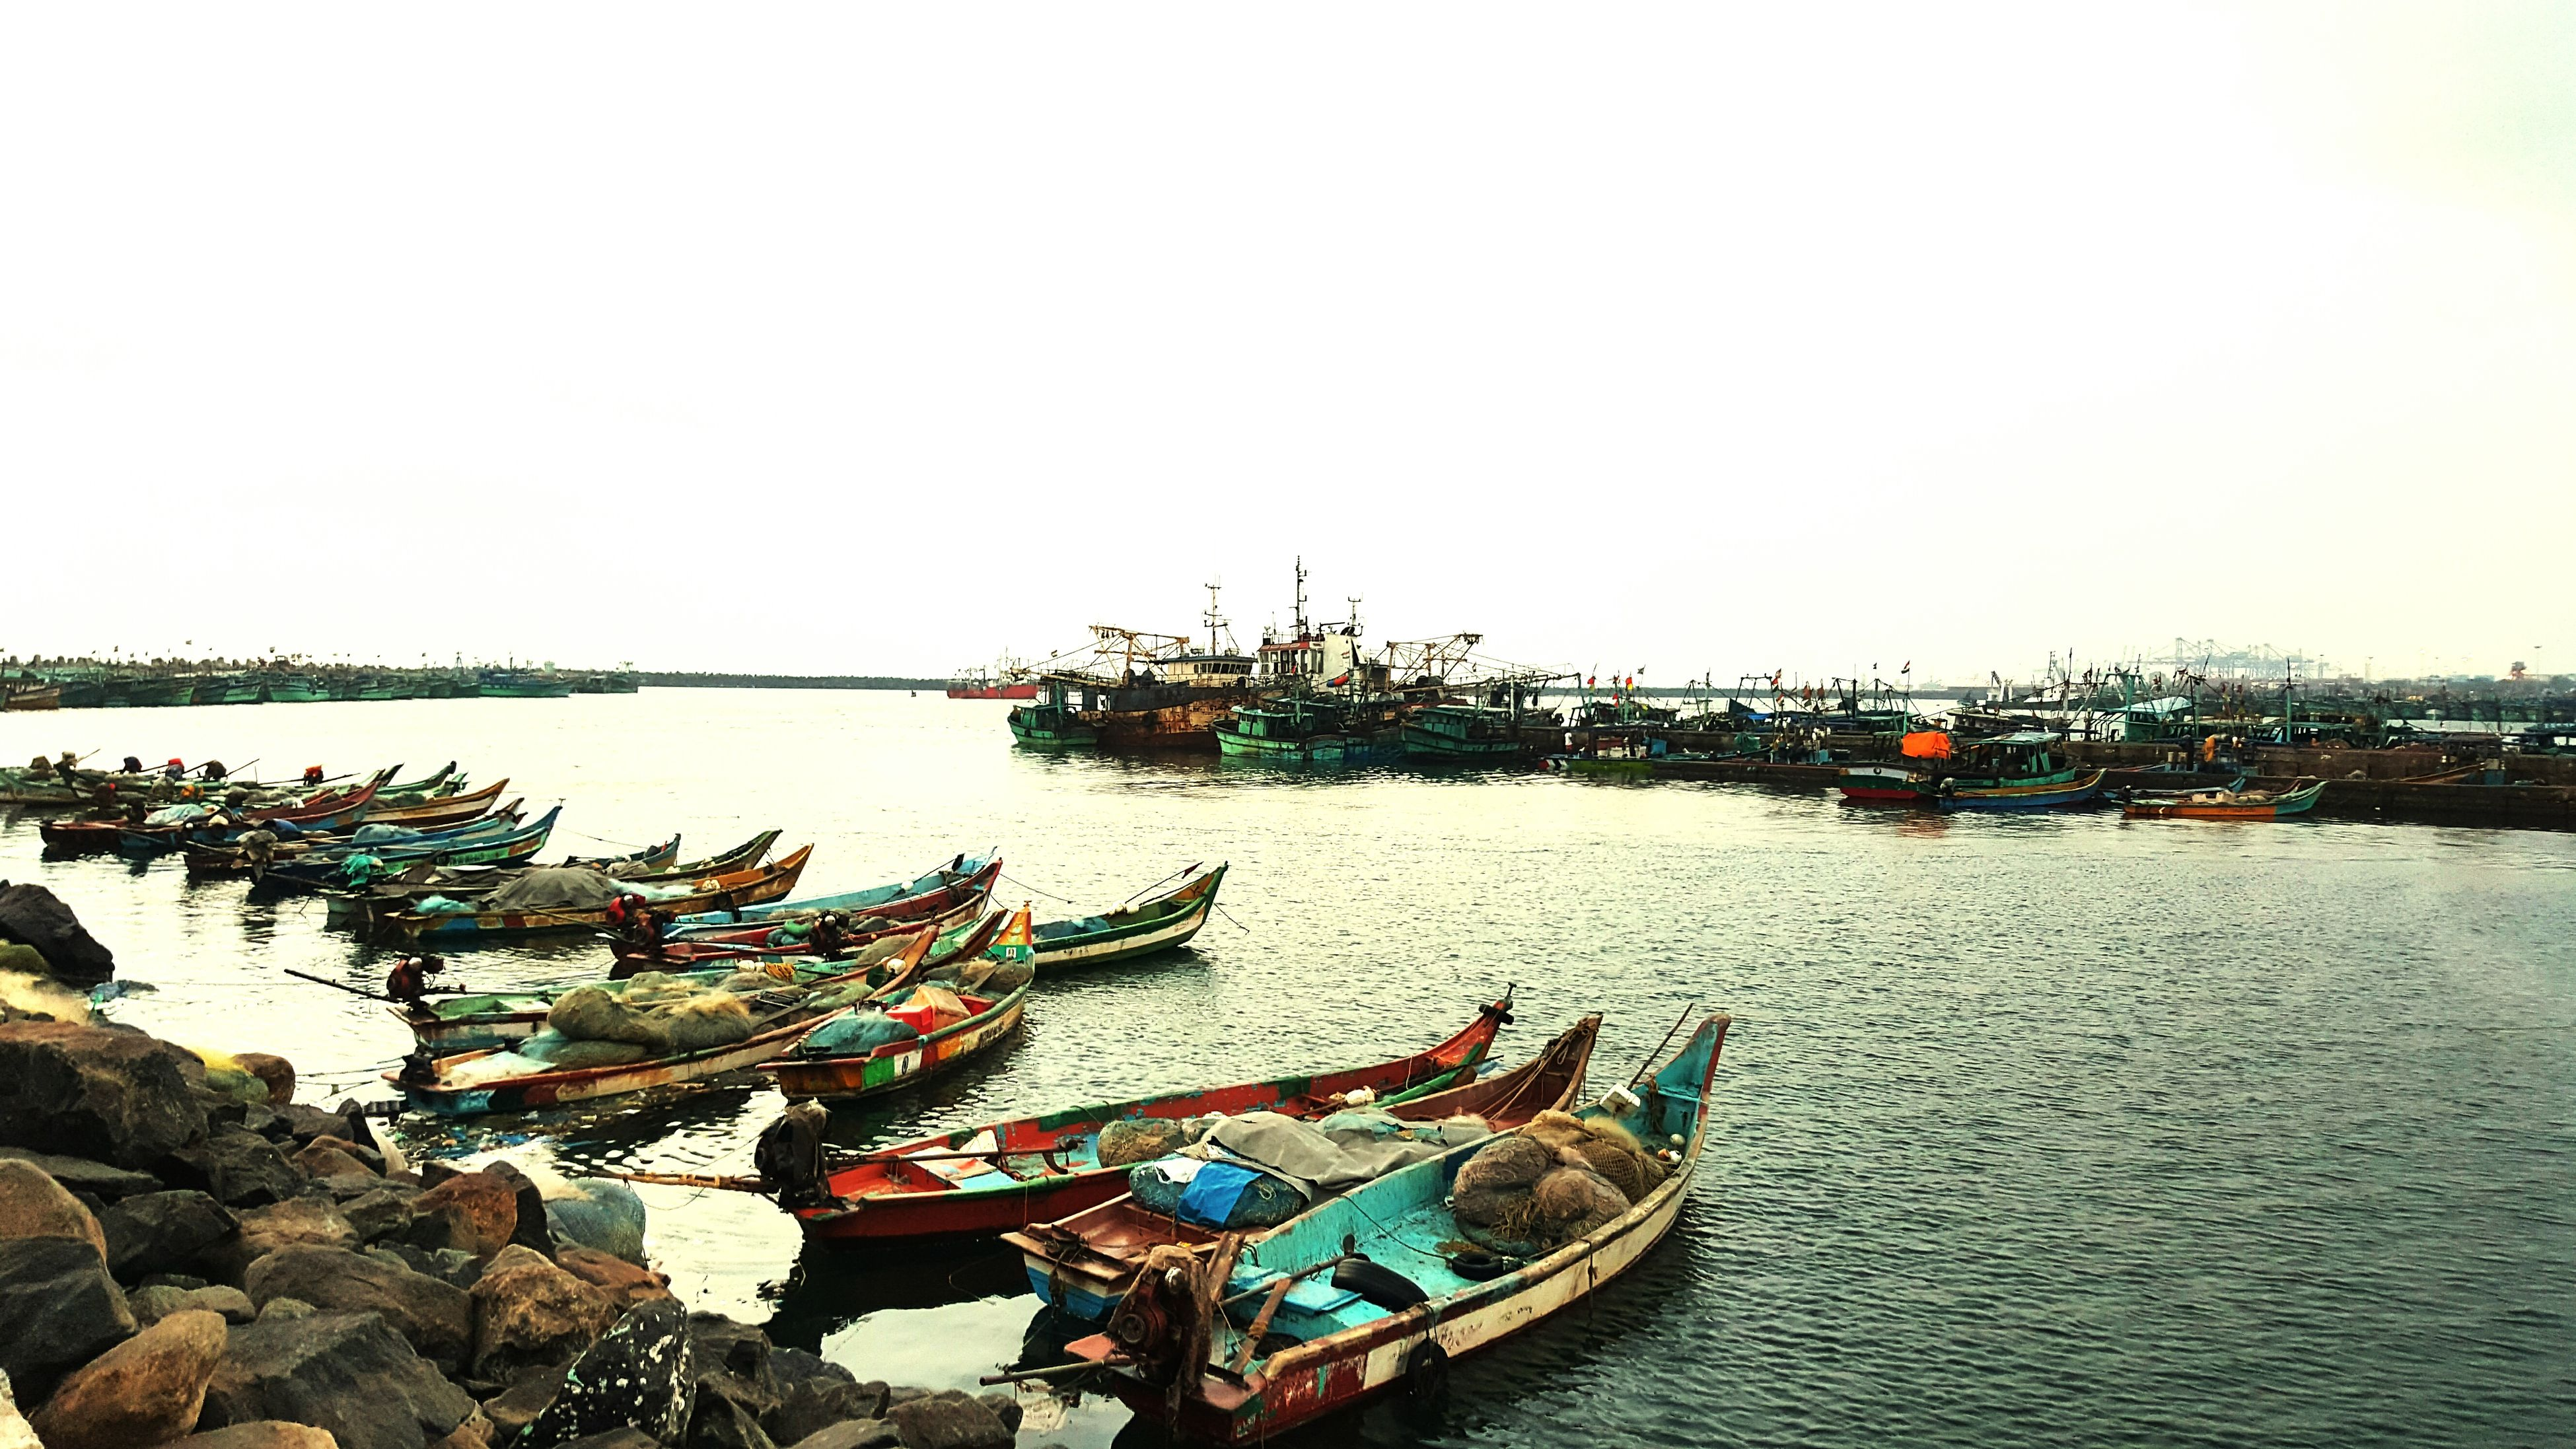 On the Harbours of Chennai , Fishery occupation ChennaiDiaries Indiapictures Enjoying Life life in namma chennai